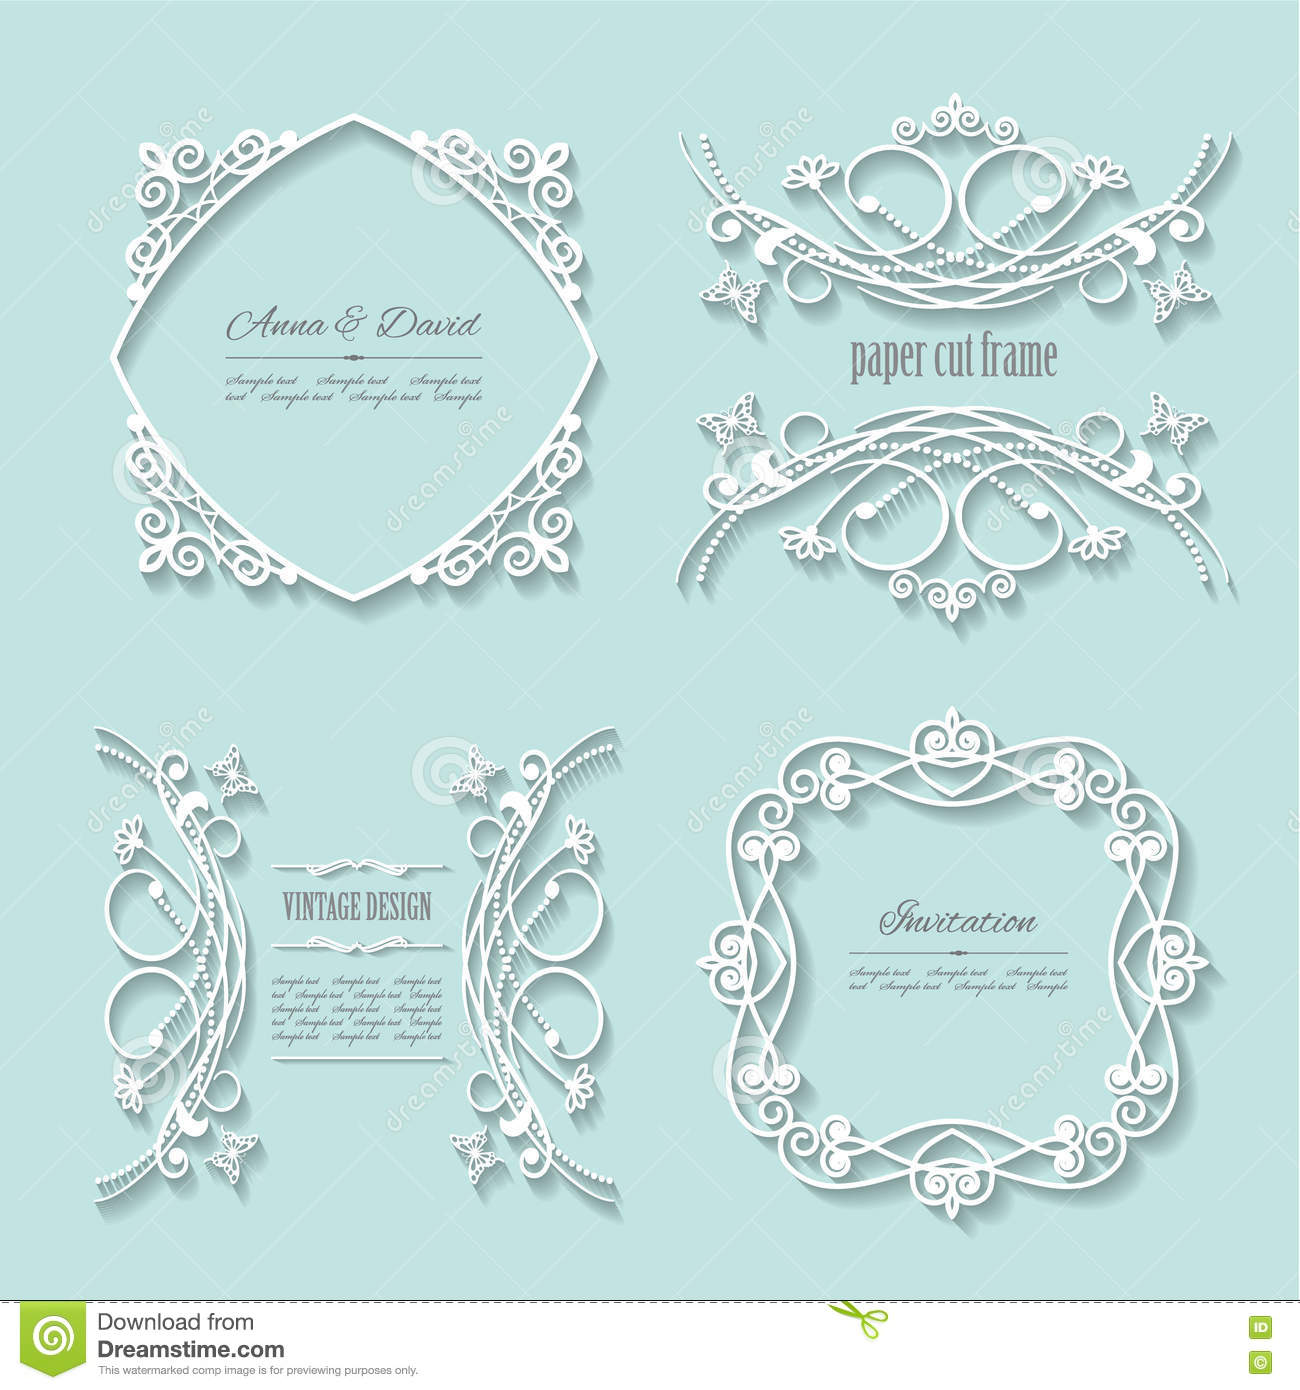 filigree paper cut frames with long shadows stock vector